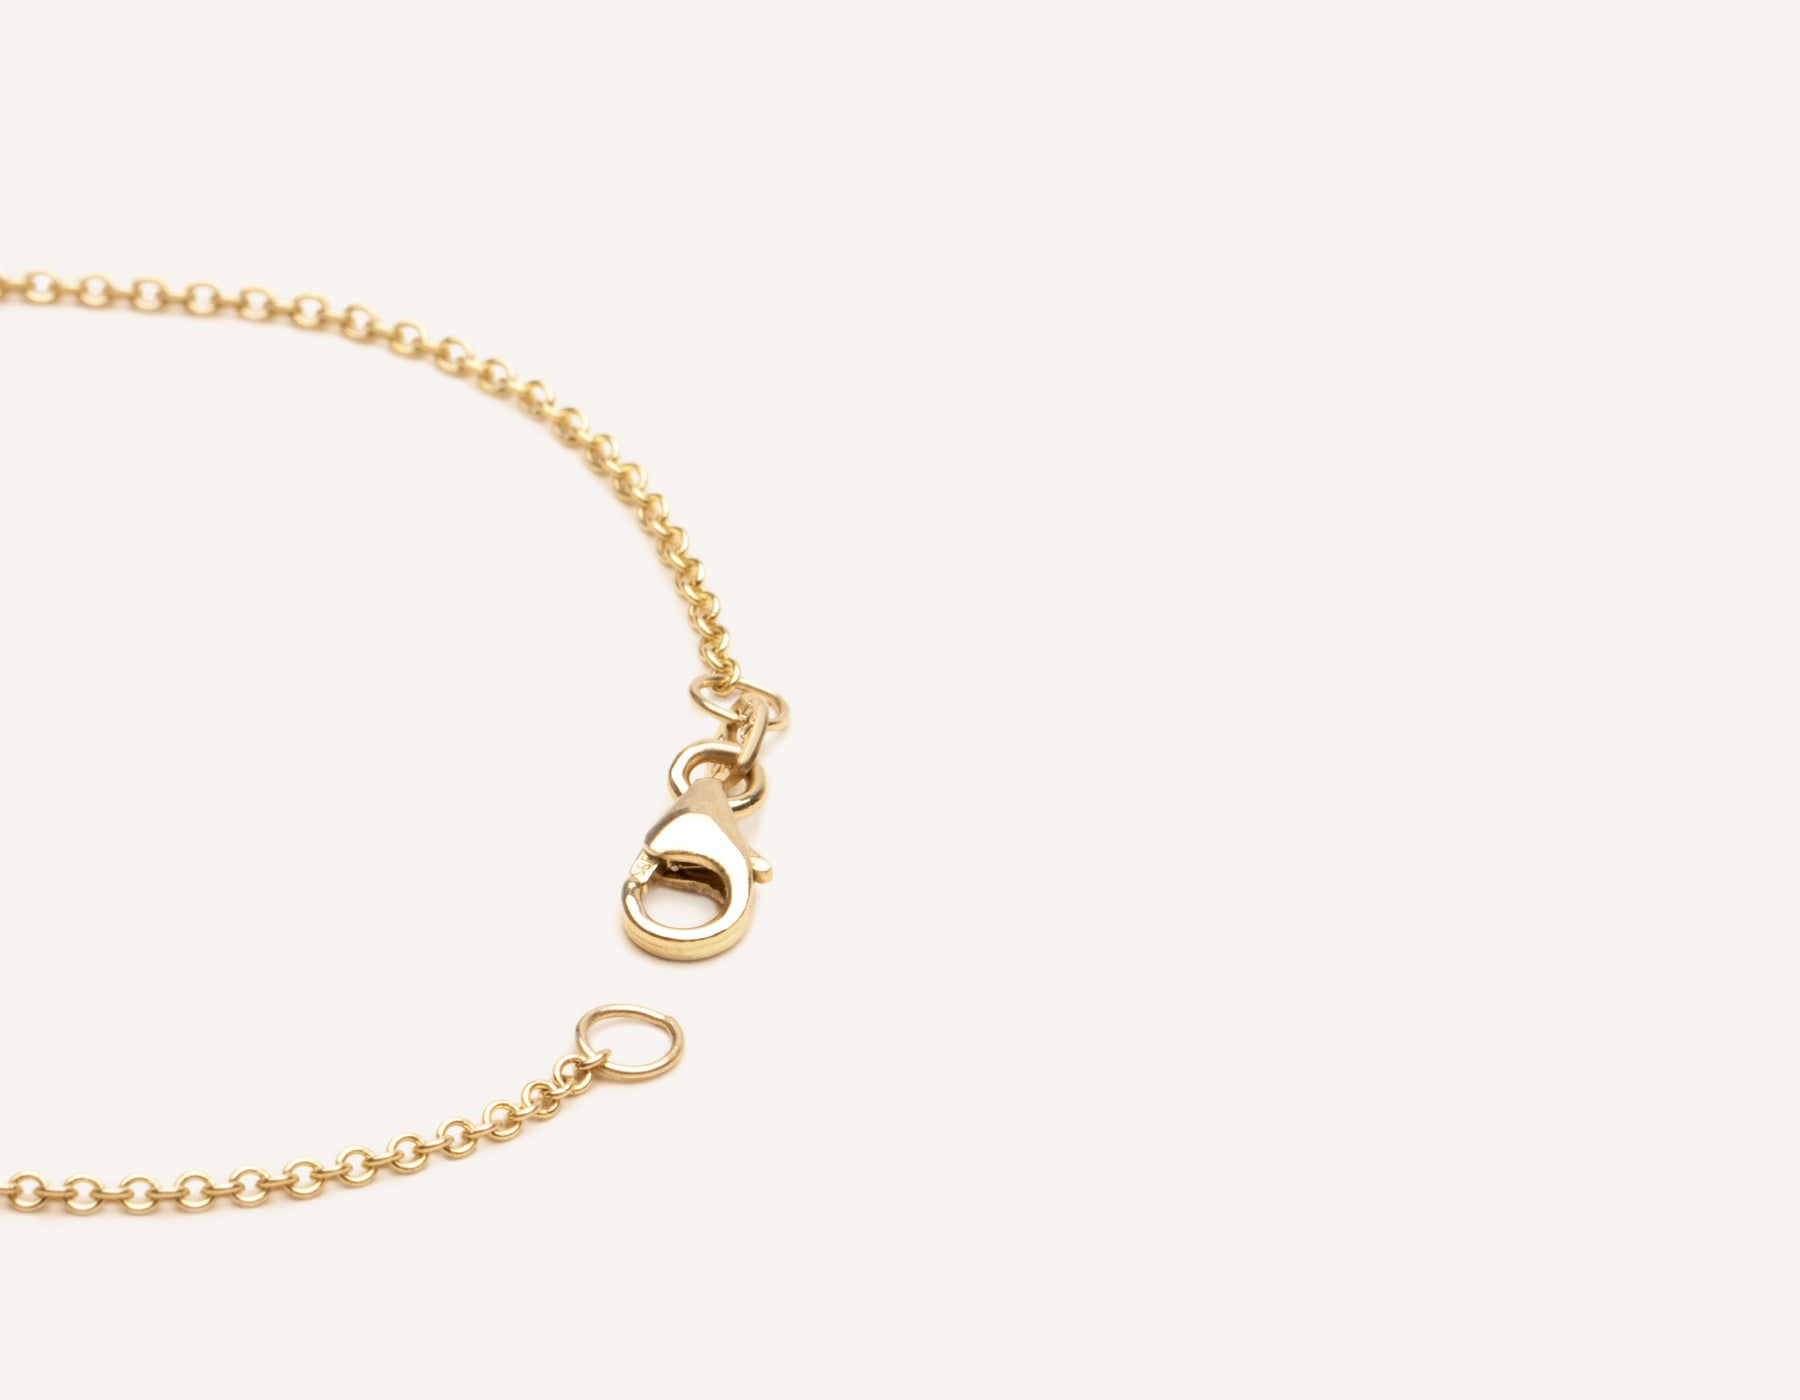 Vrai & Oro 14k solid gold bracelet lobster clasp, 14K Yellow Gold